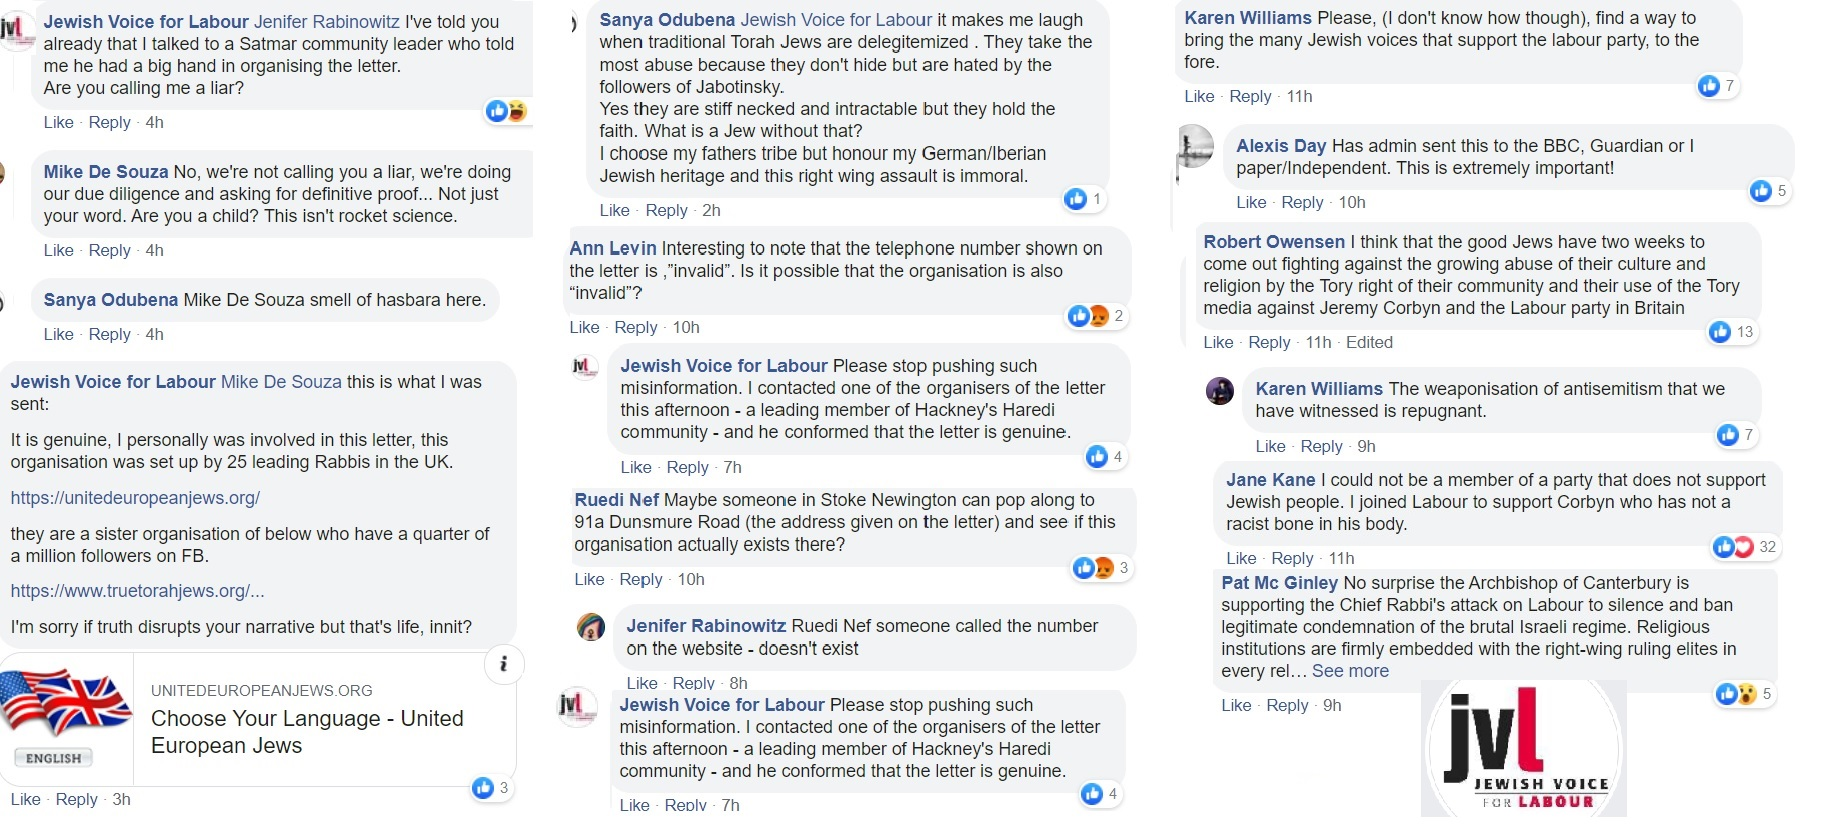 jvl united european jews